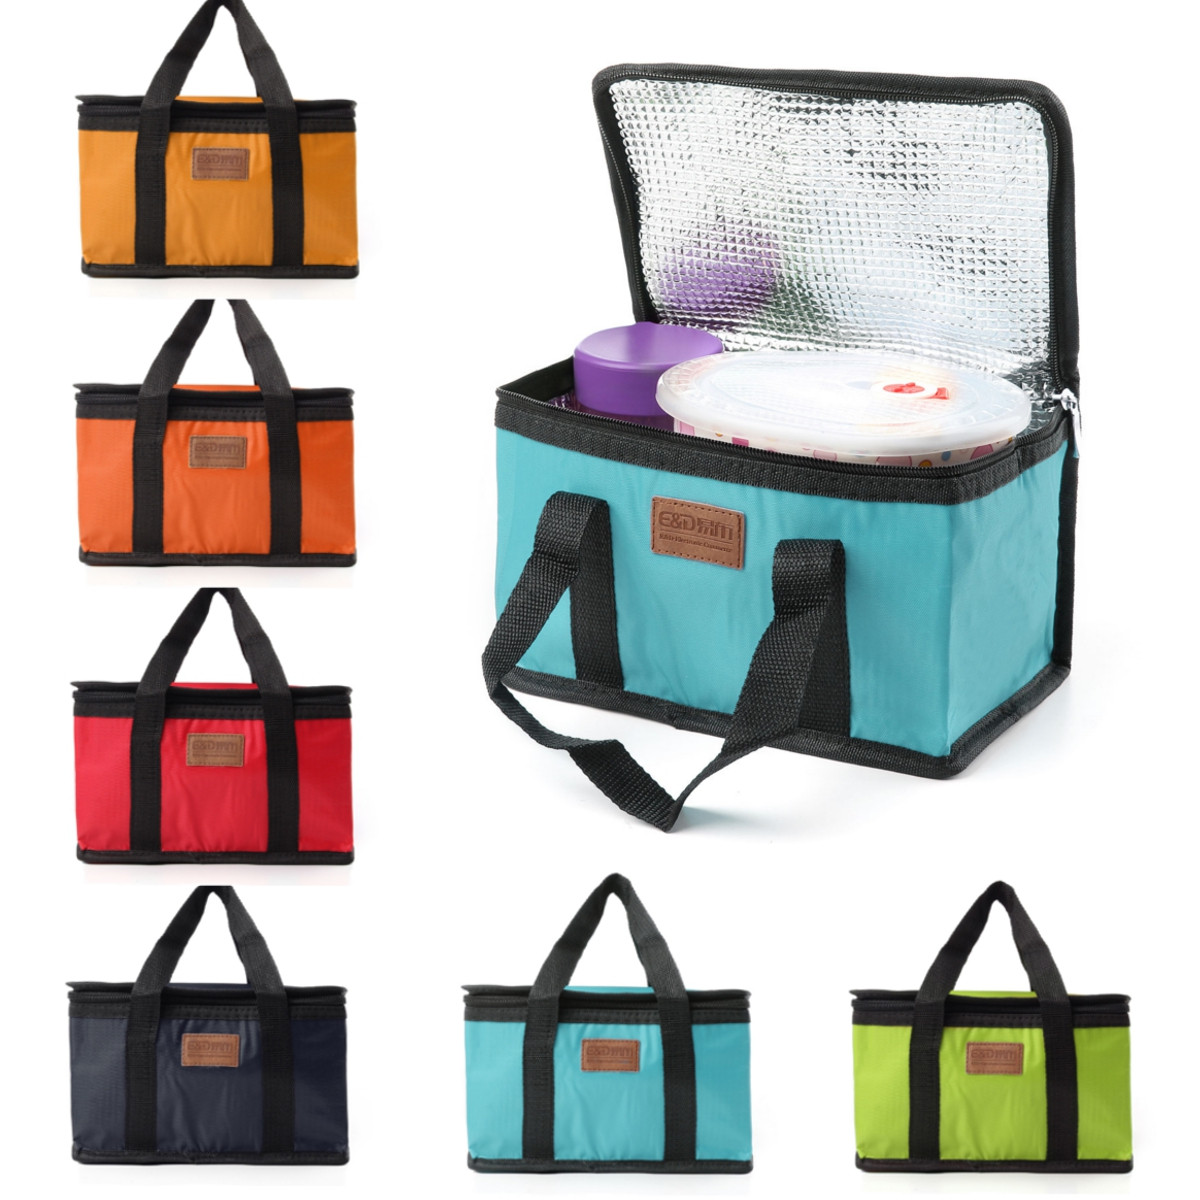 Lunch Bag Portable Waterproof Thermal Cooler Insulated Lunch Box Storage Picnic Bag Pouch